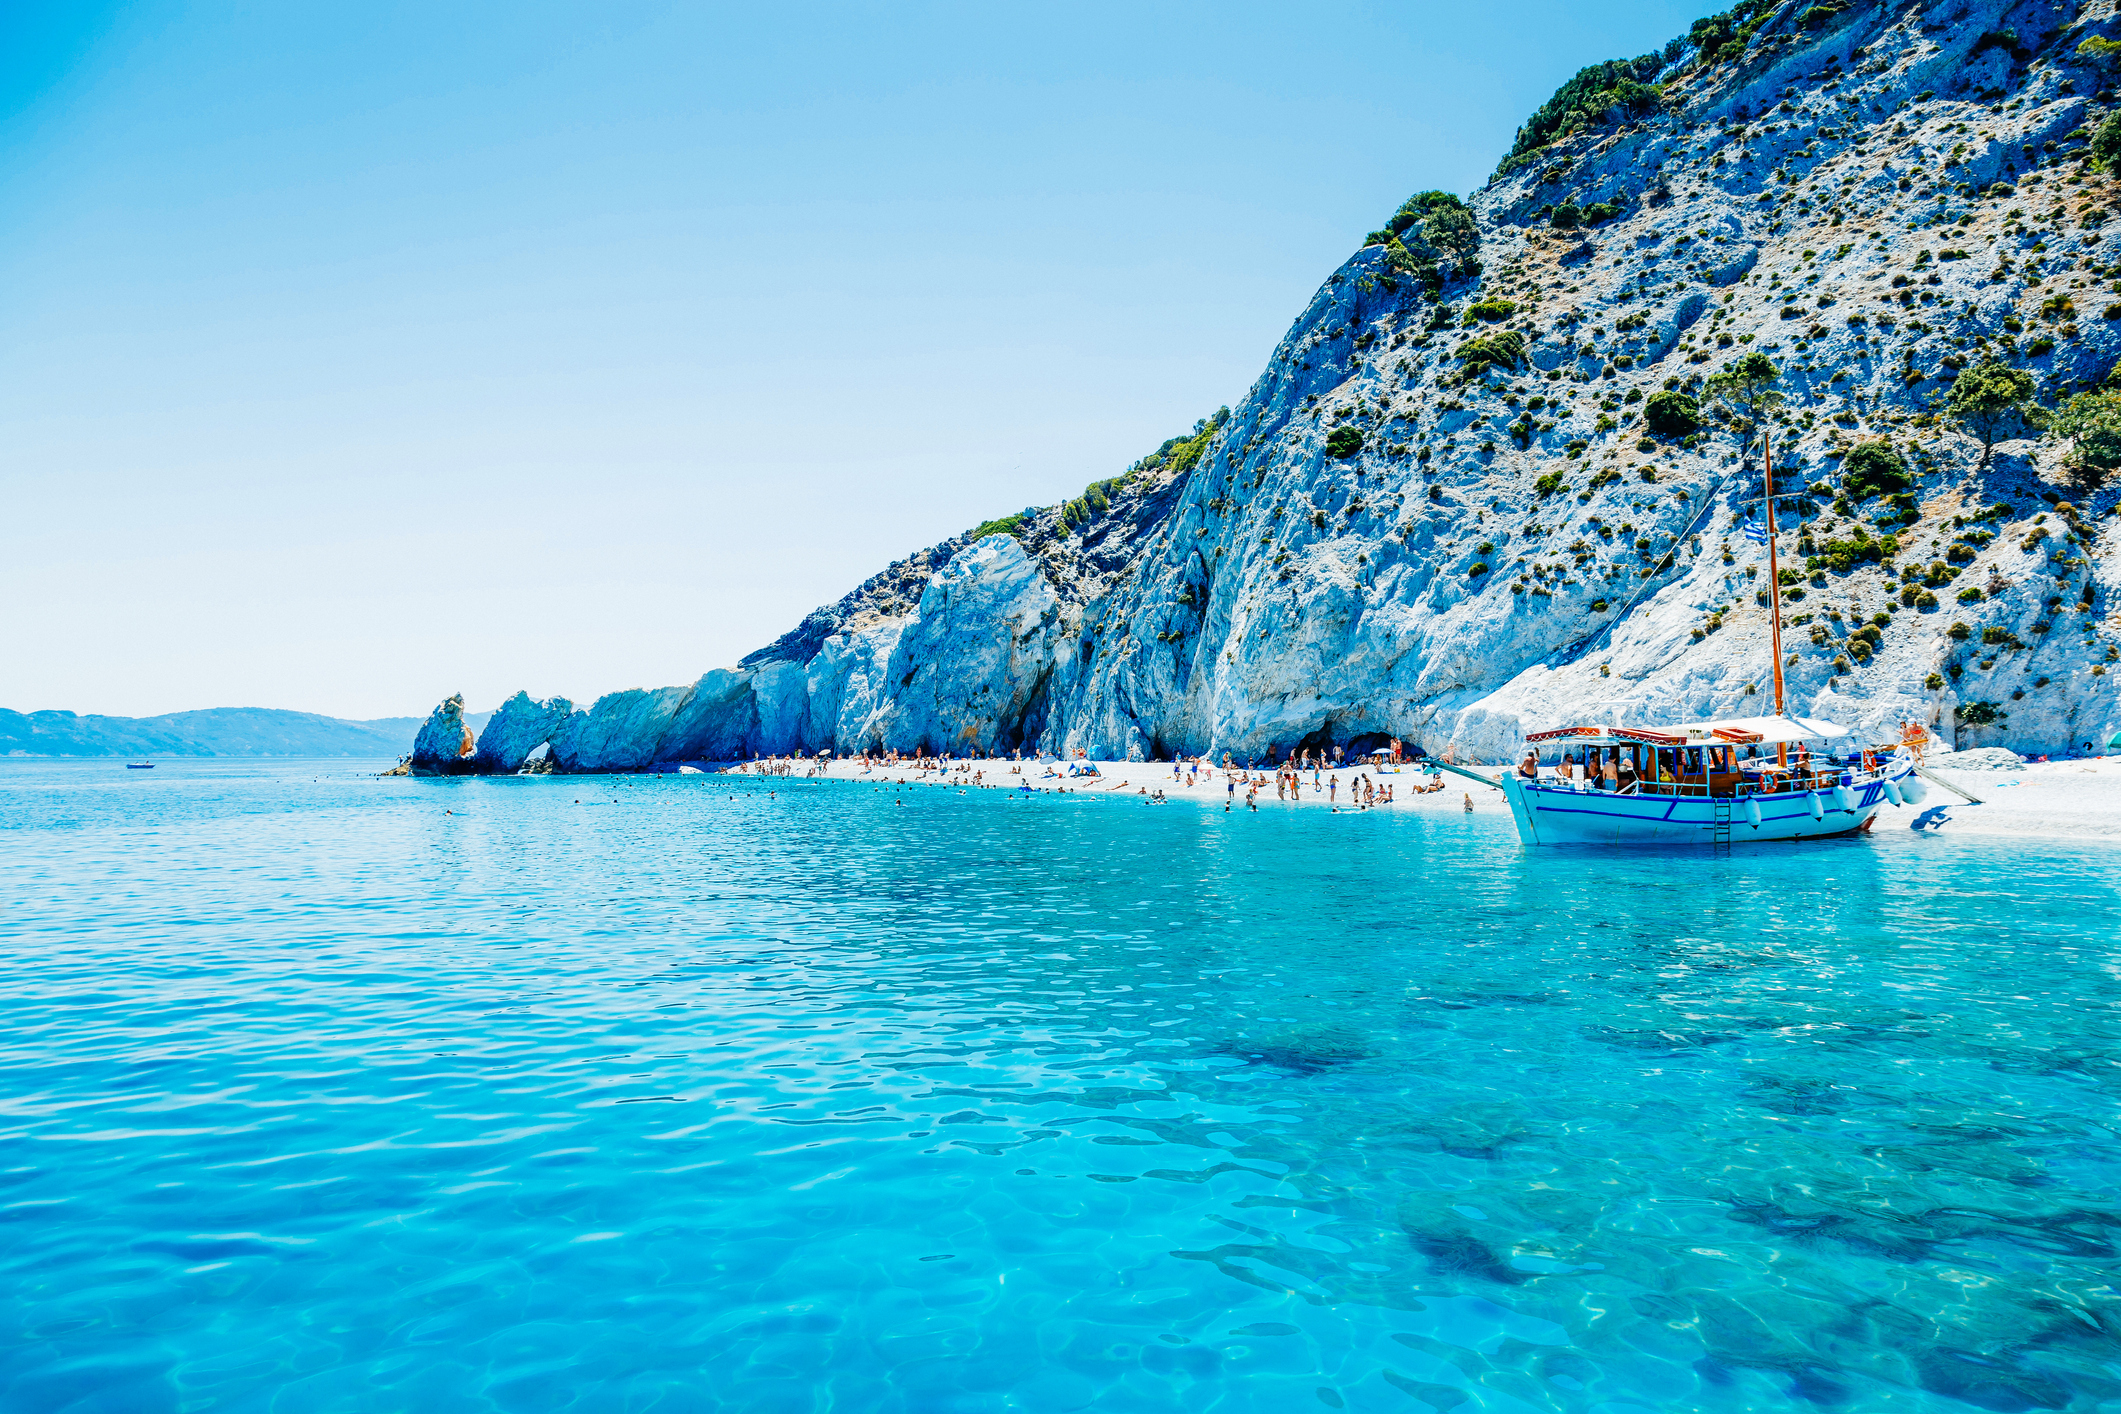 Three truly awesome places to visit in Greece